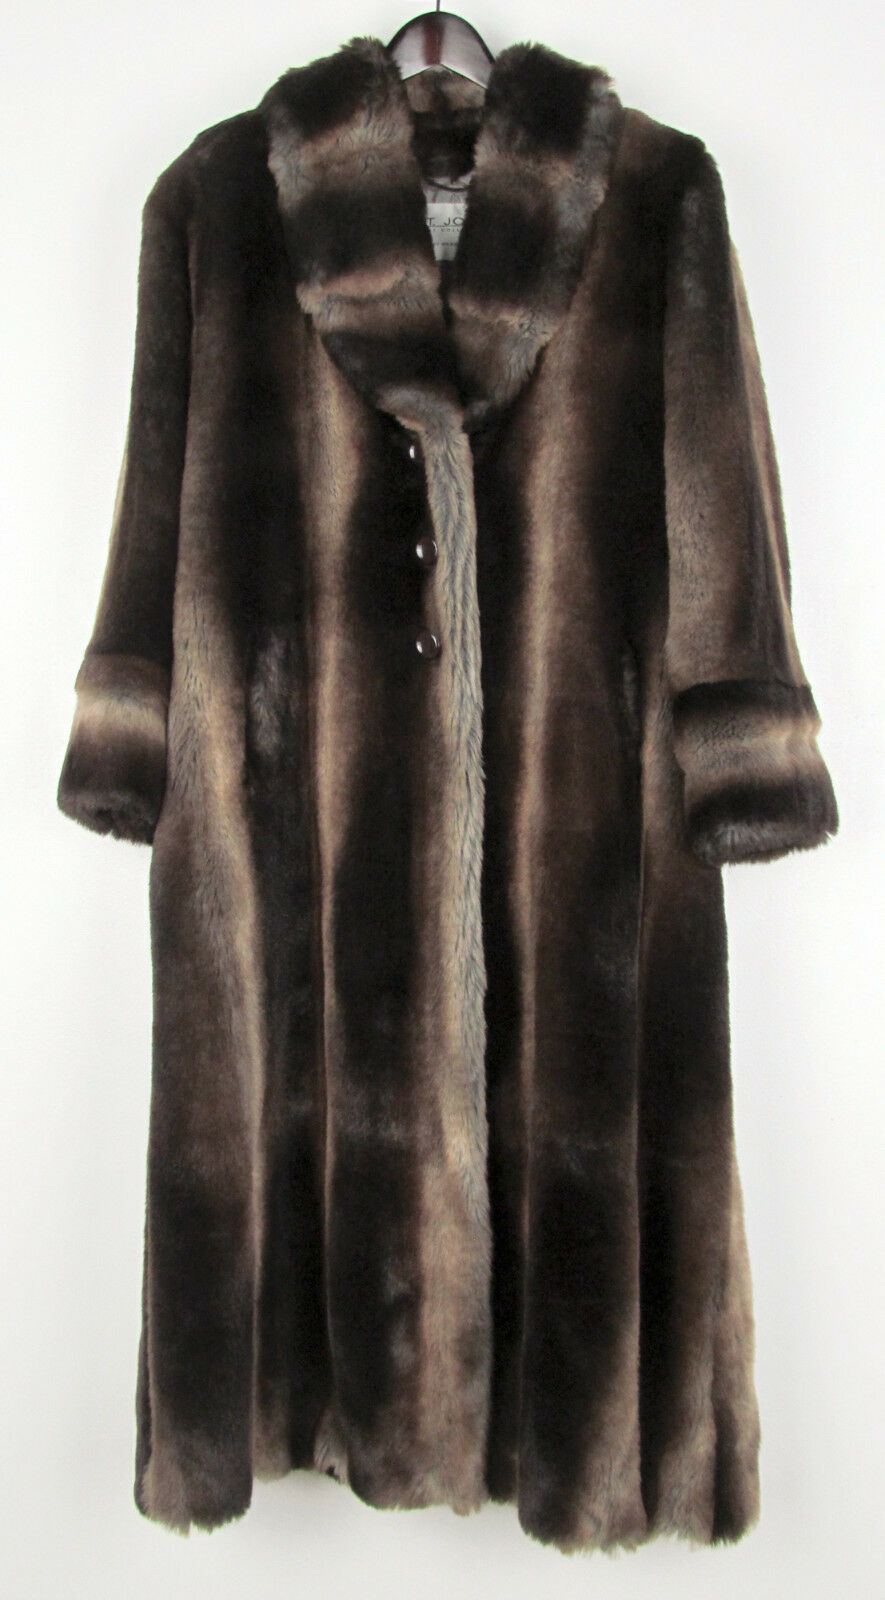 2995.00 New St John Faux Sable Fur Full Length Coat US Women's 4 Made In USA